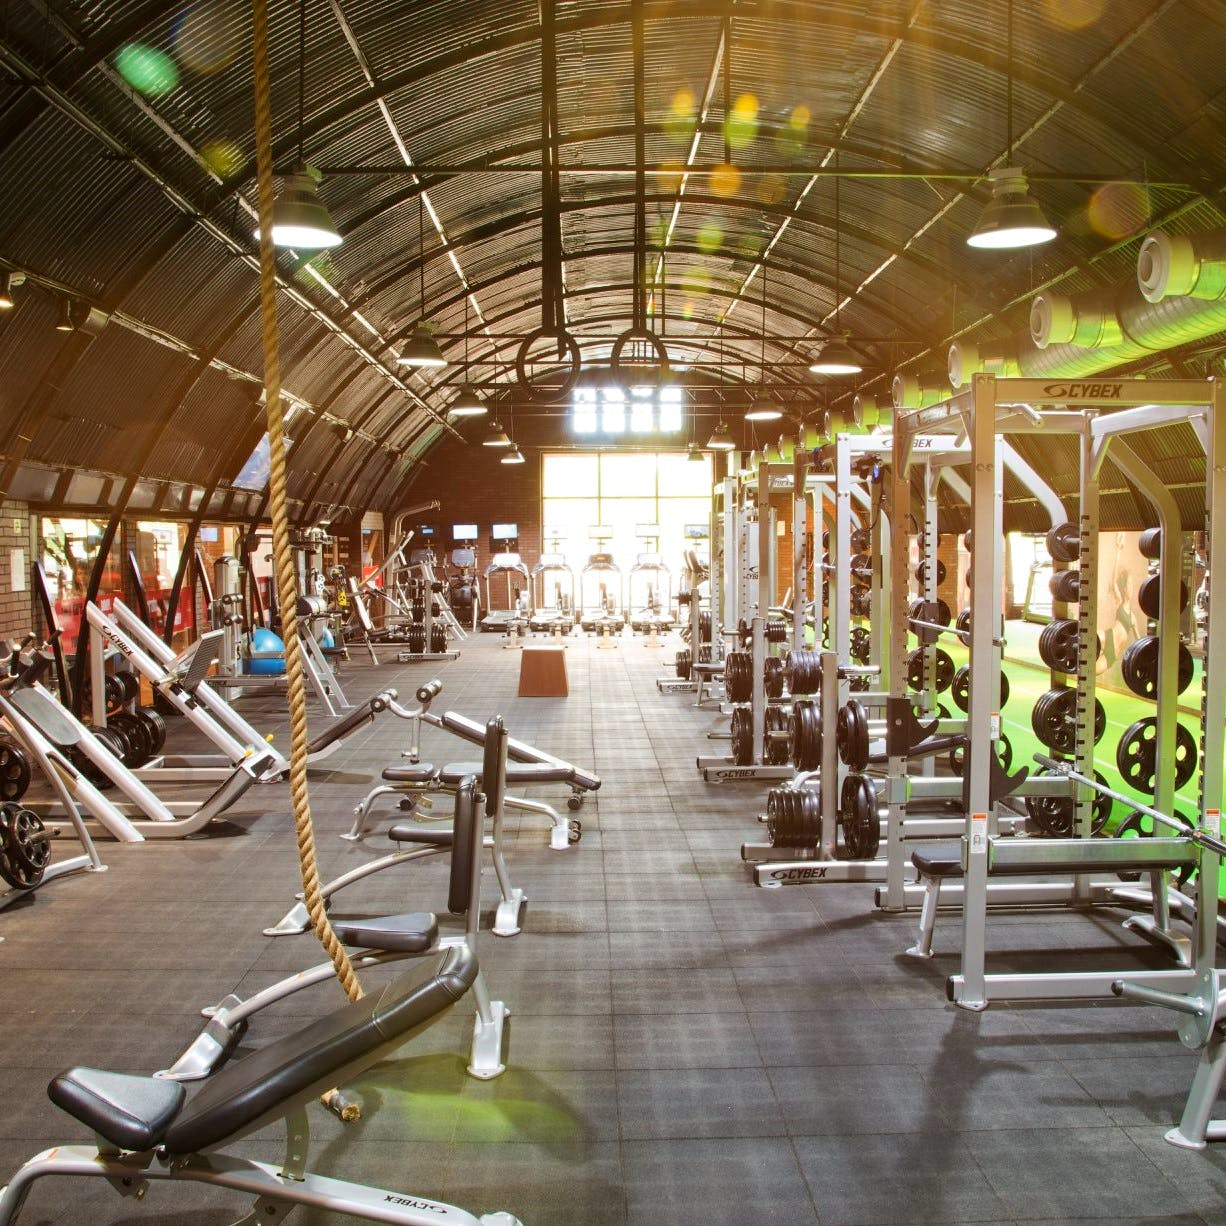 Gym,Physical fitness,Room,Exercise machine,Exercise equipment,Sport venue,Leisure,Building,Exercise,Plant